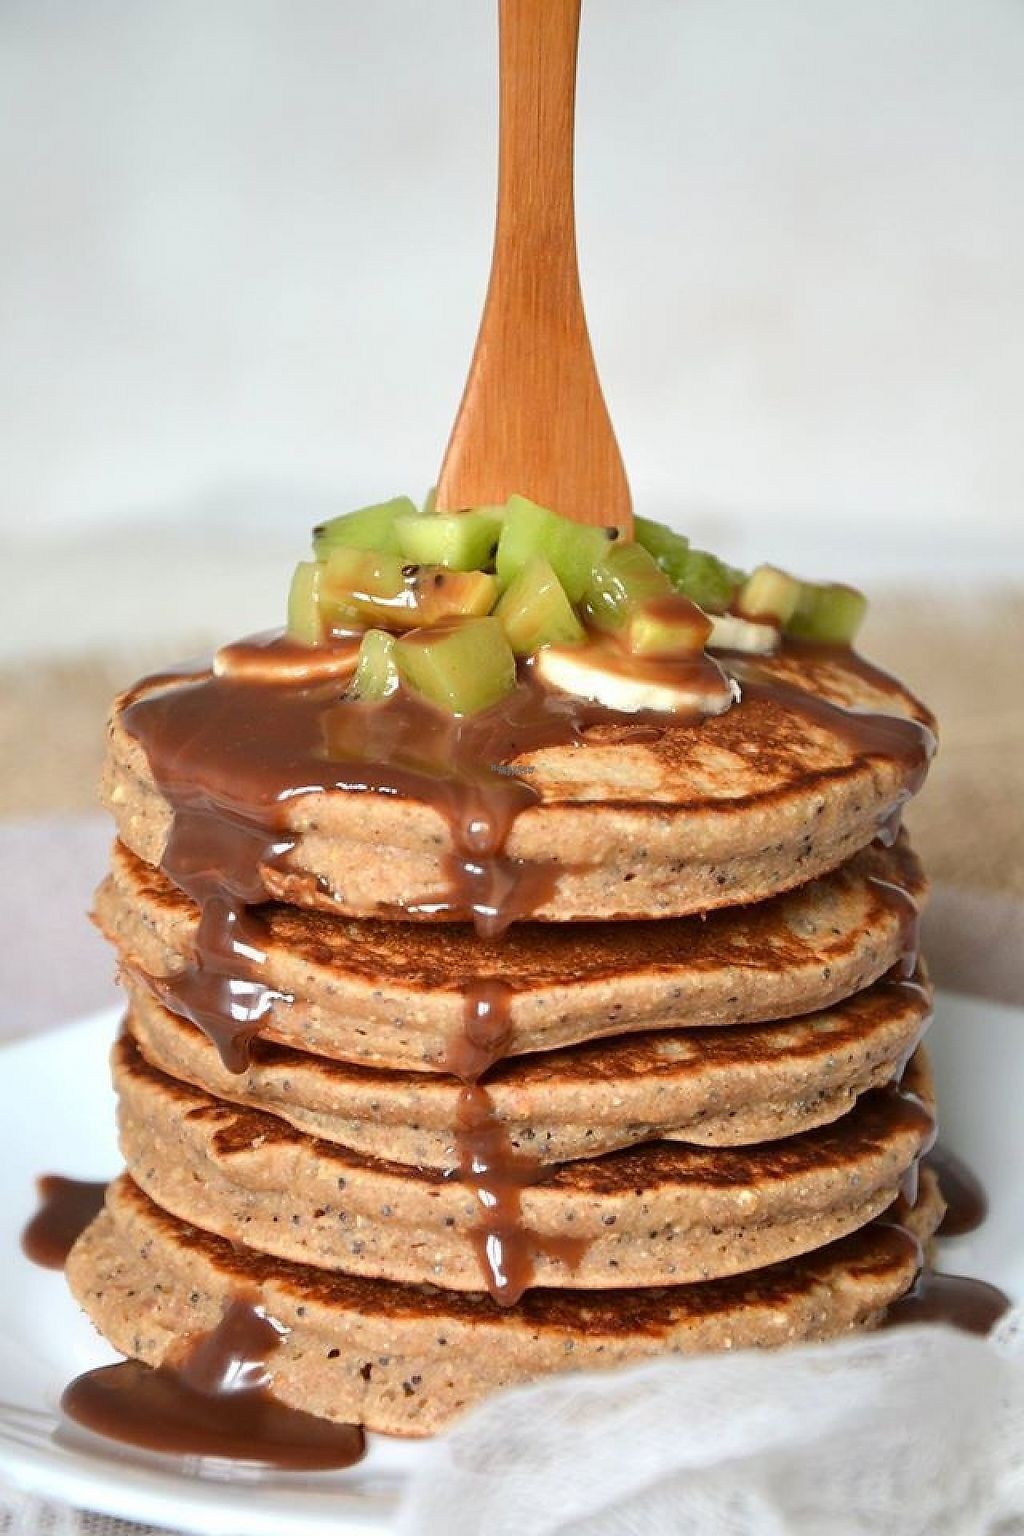 """Photo of La Vie Claire - Haddou  by <a href=""""/members/profile/community"""">community</a> <br/>vegan pancakes  <br/> February 4, 2017  - <a href='/contact/abuse/image/72037/221915'>Report</a>"""